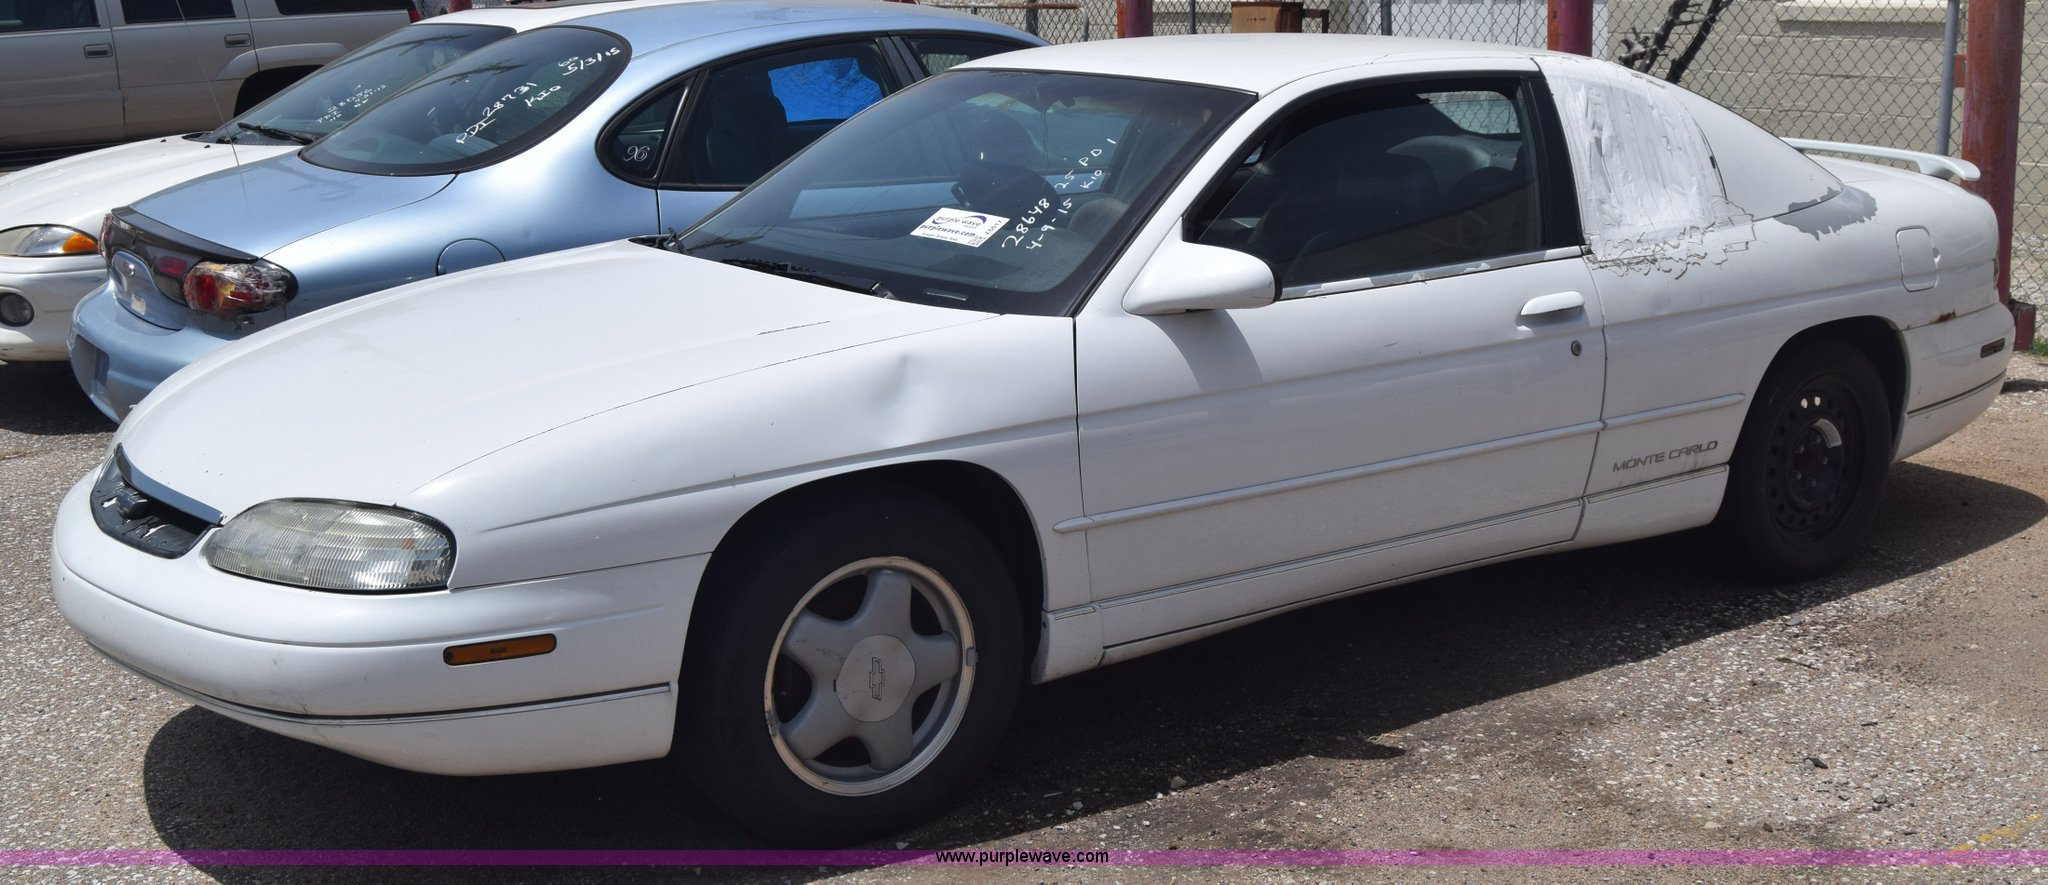 1995 chevrolet monte carlo ls in wichita ks item j6617 sold purple wave 1995 chevrolet monte carlo ls in